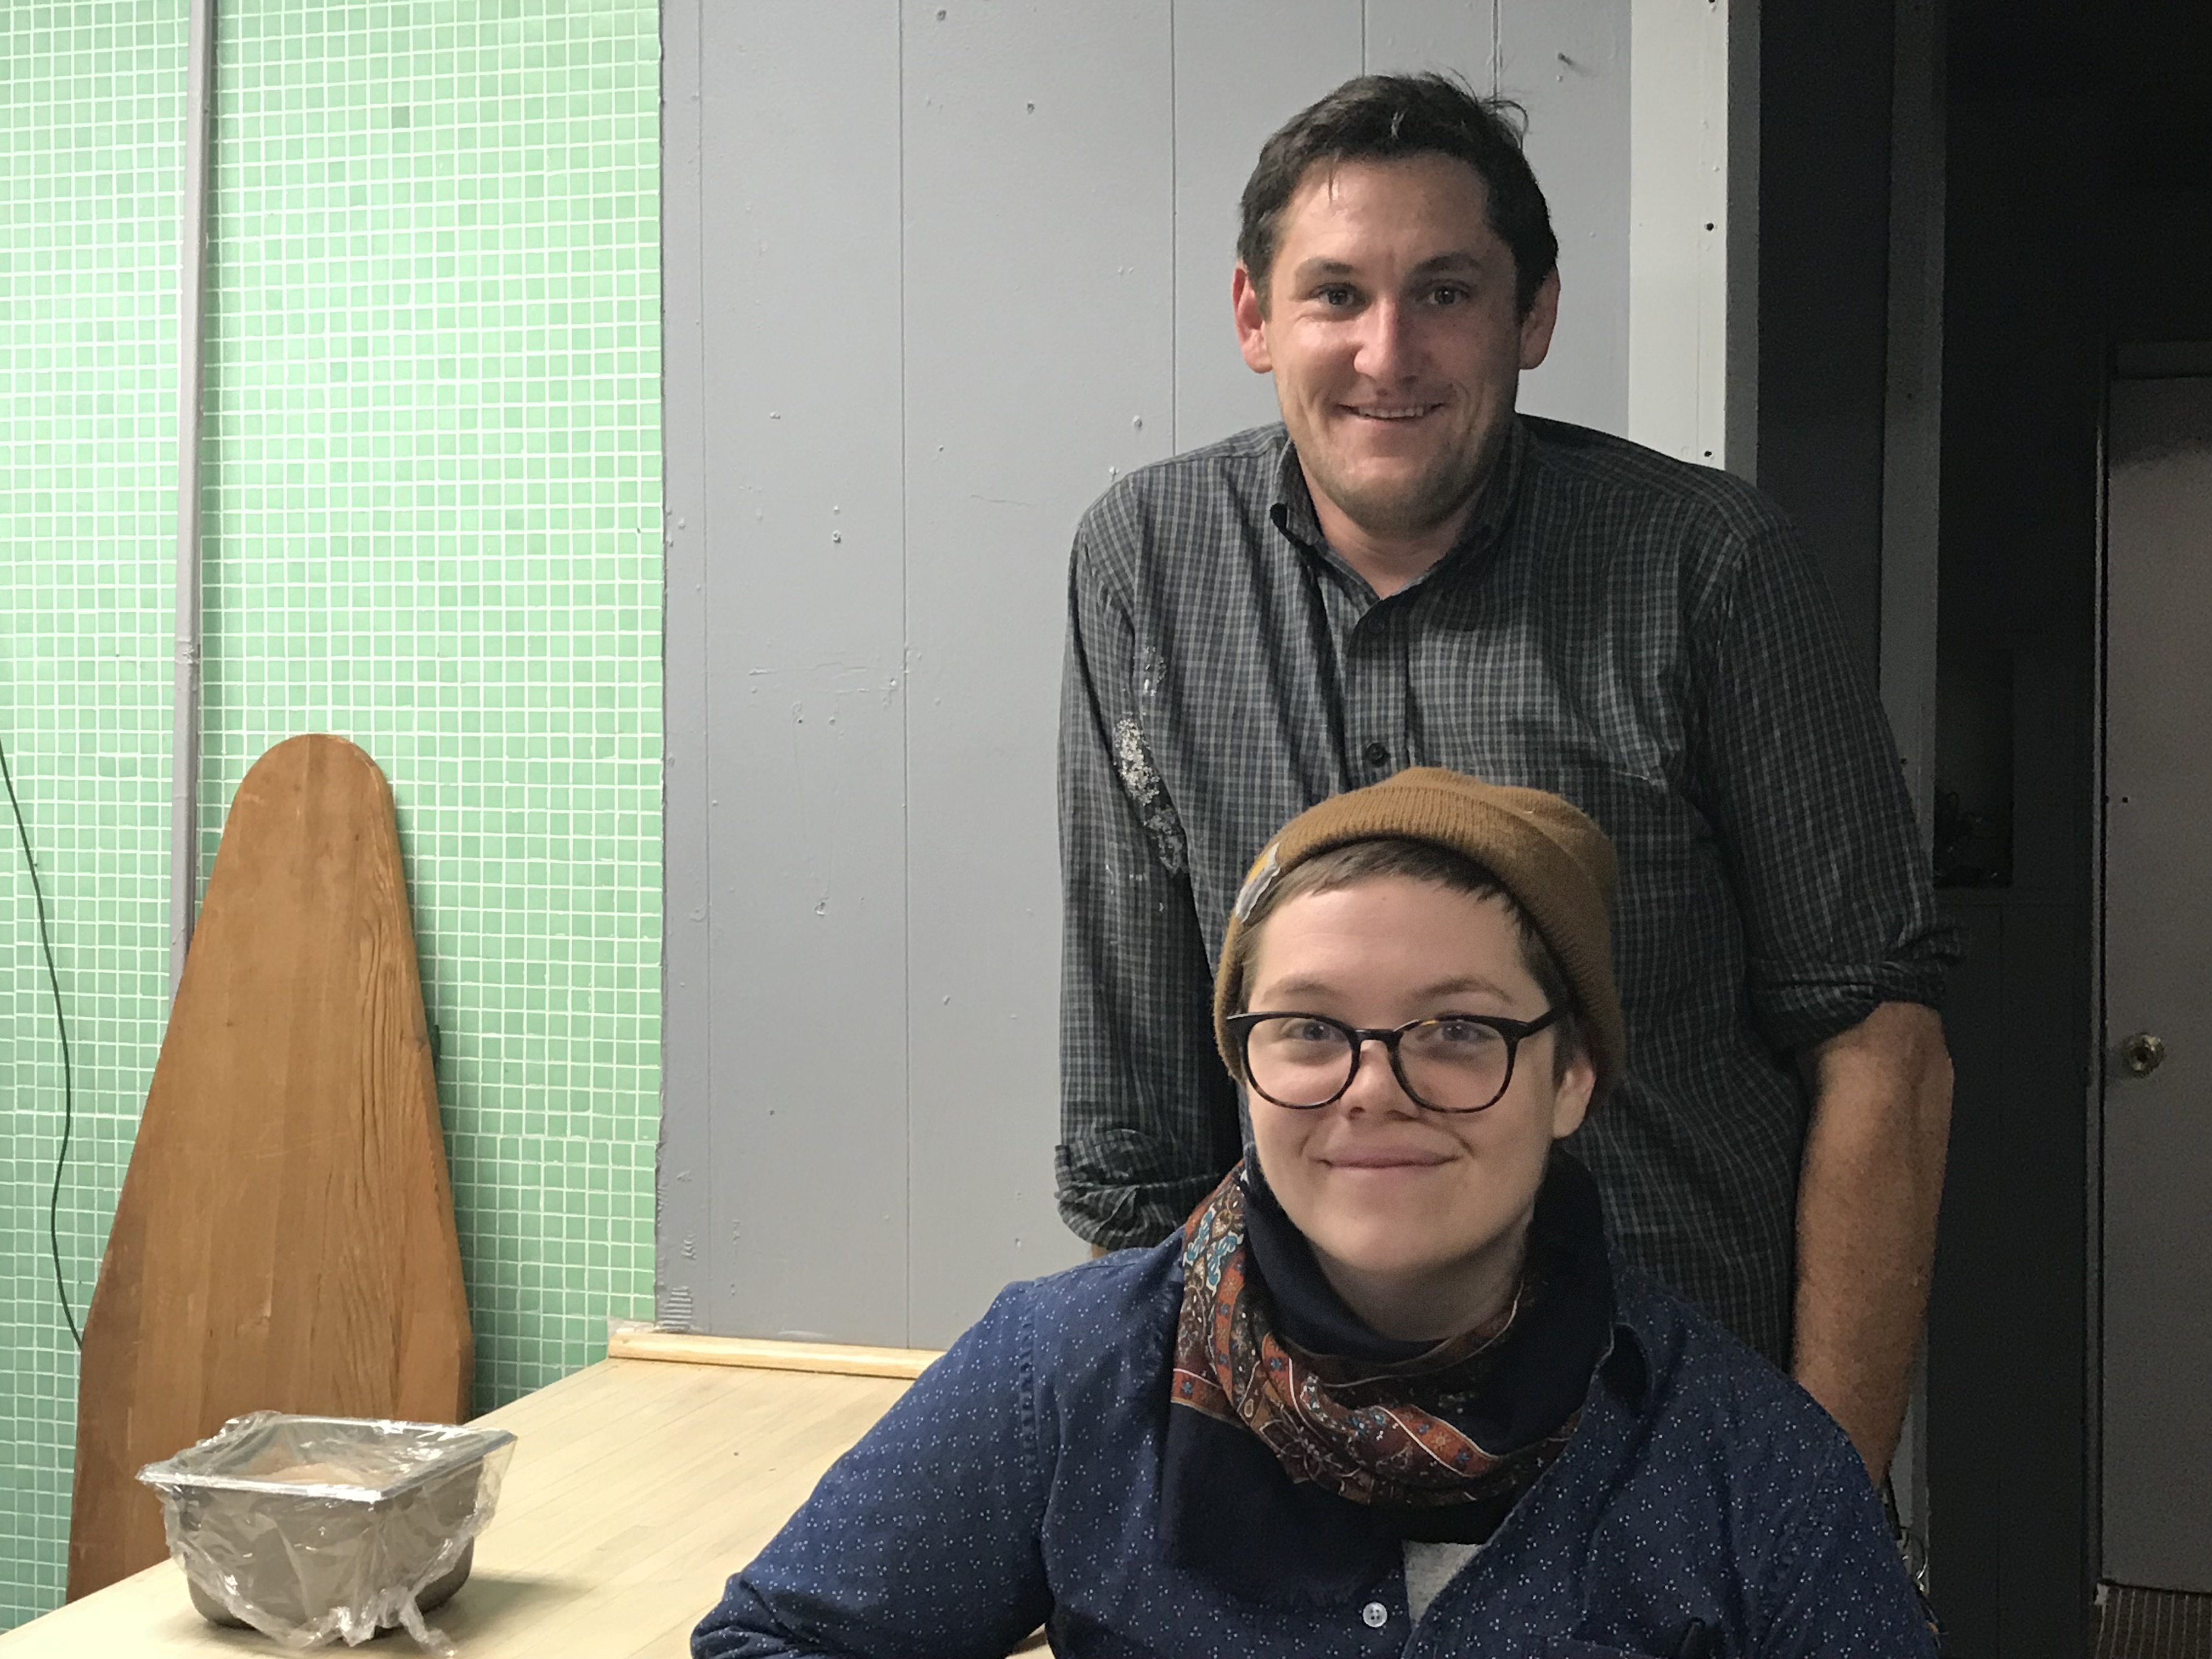 IMG_1245.jpg Lou DeVito and Becca Hegarty join Jodo Oddo in opening Bitter Ends Luncheonette in Bloomfield next week.